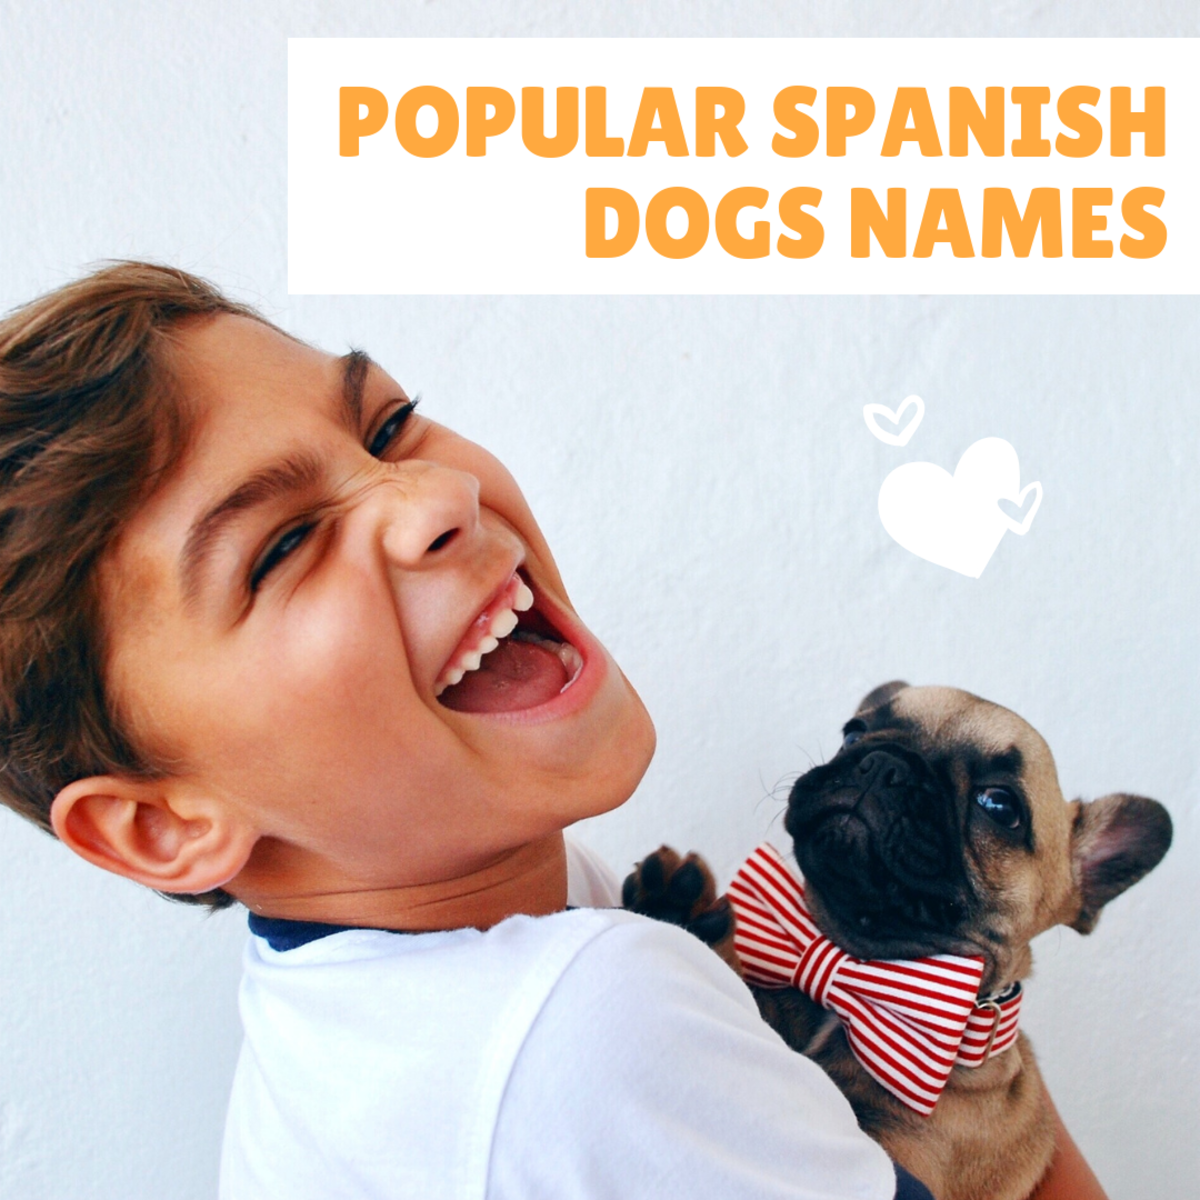 The most popular Spanish dog names.